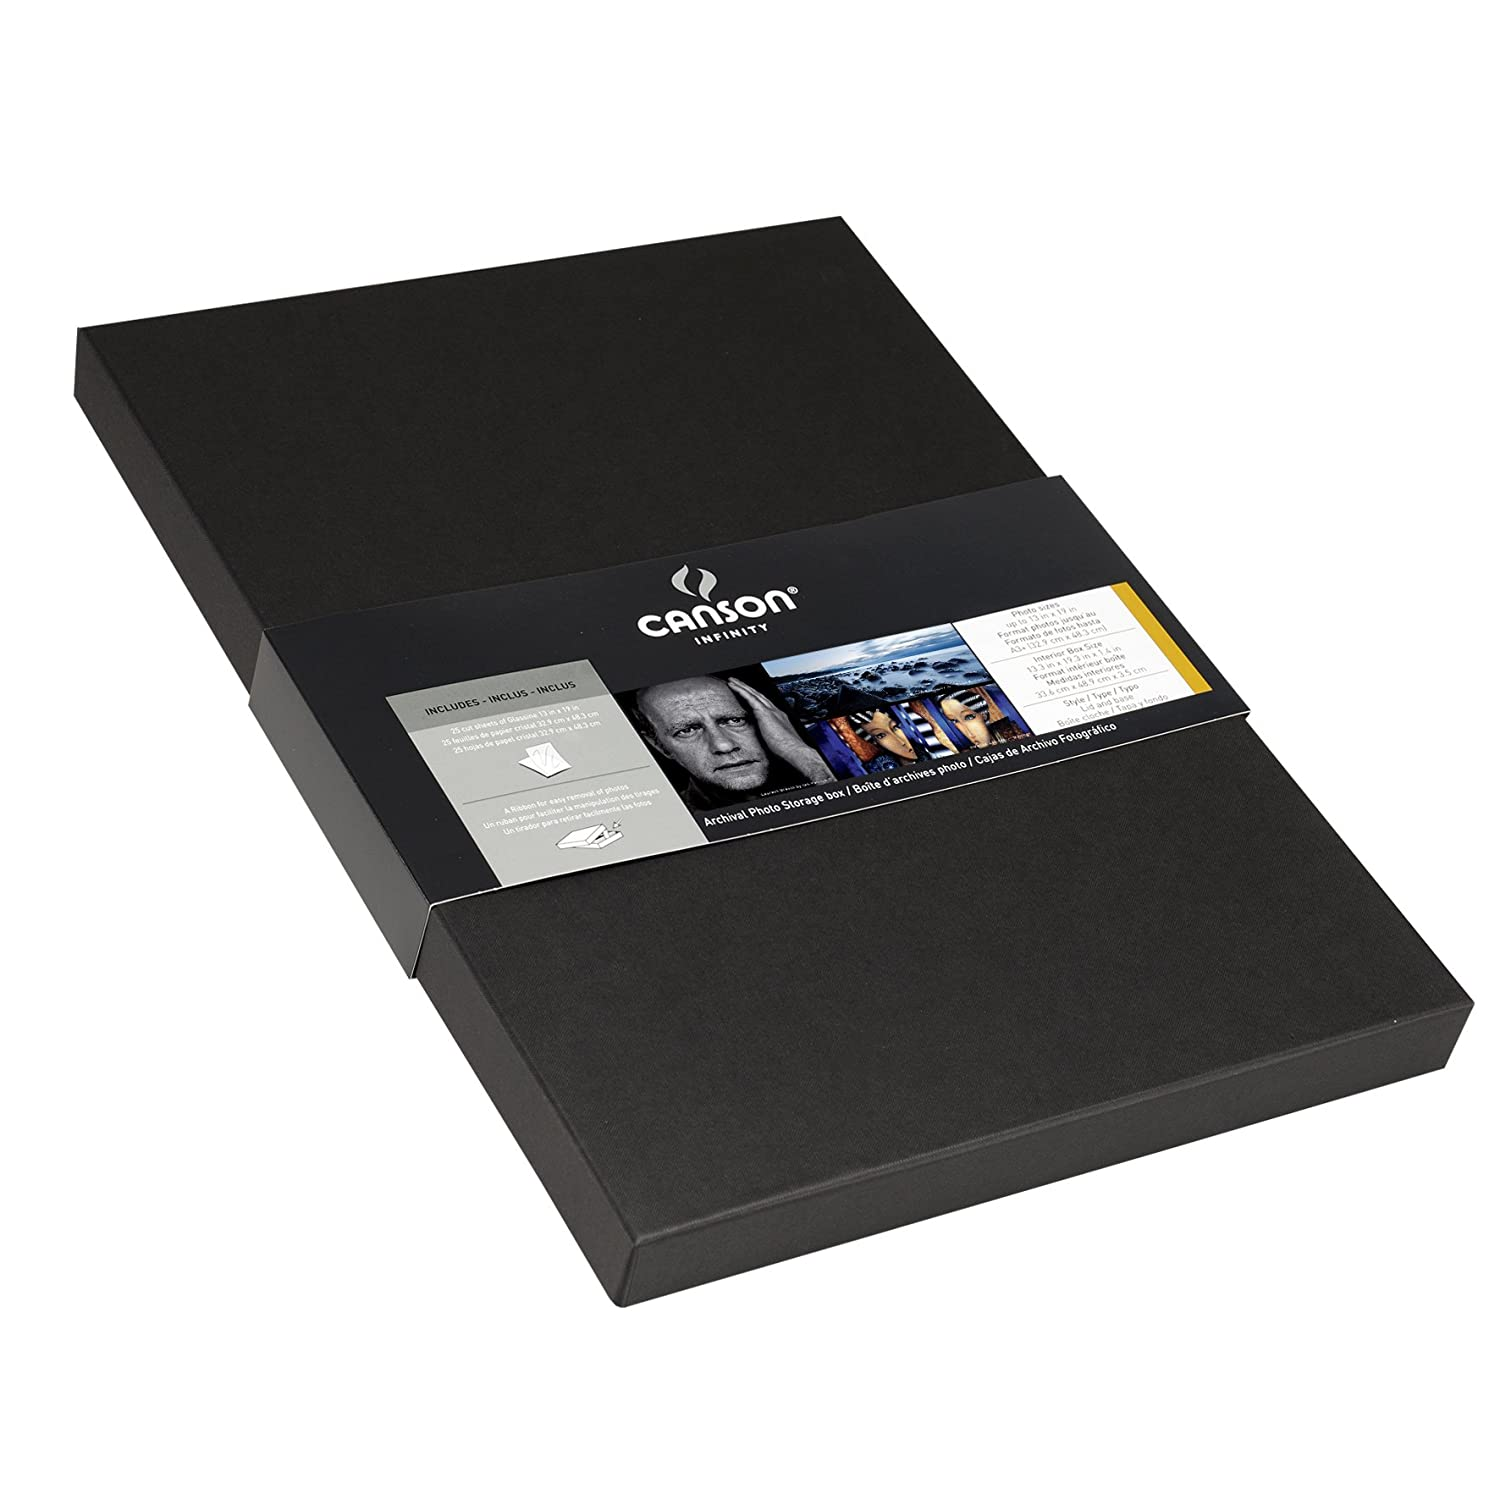 Amazon.com: Canson Infinity Archival Box, for Images and Documents up to 8.5 x 11 inches, Fits 8.5 x 11 Inch Sheets, Black: Arts, Crafts & Sewing